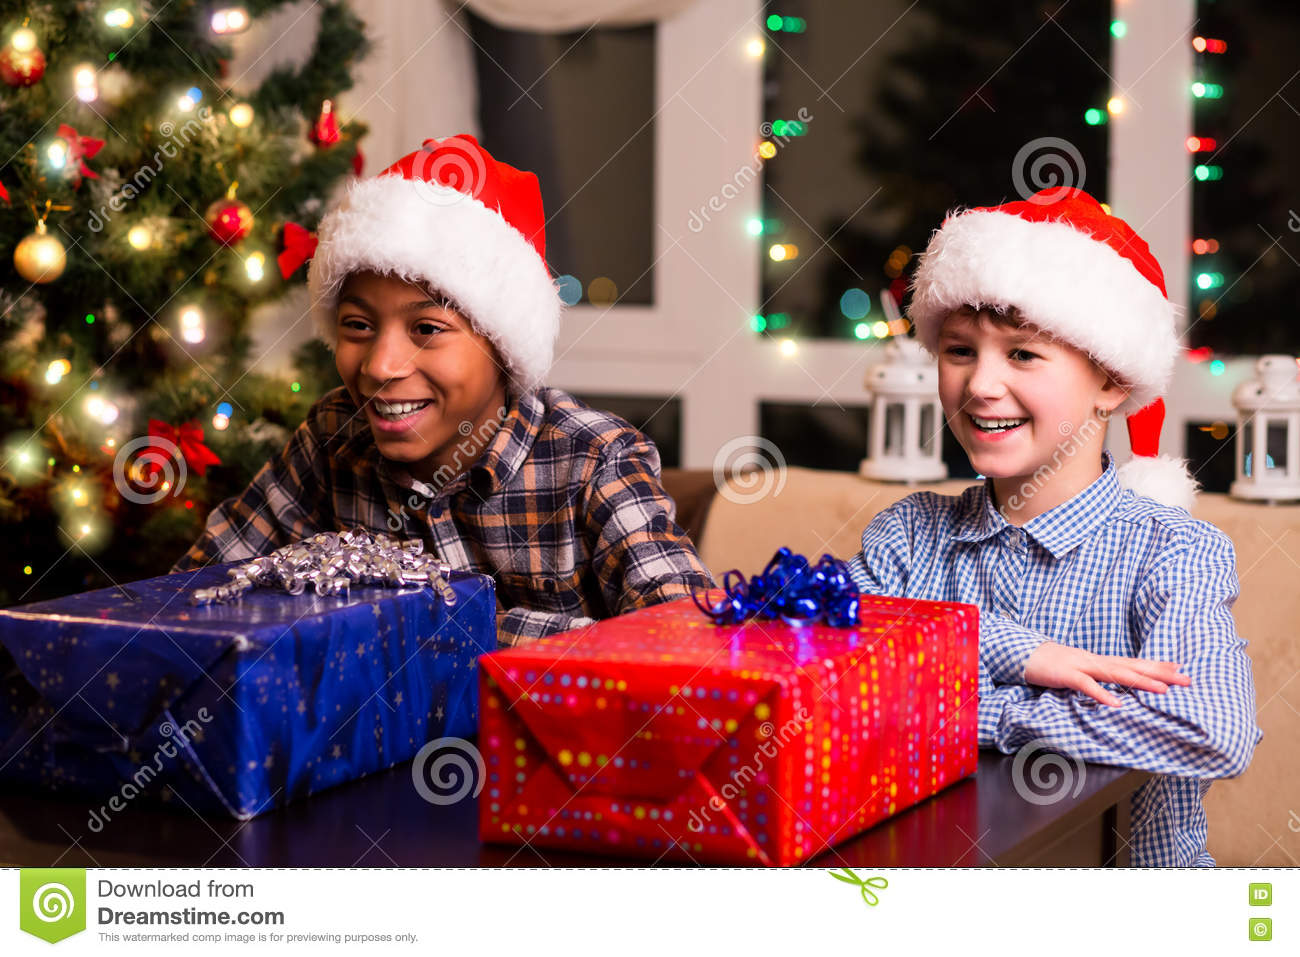 Boys Christmas Present.Two Boys With Christmas Presents Stock Image Image Of